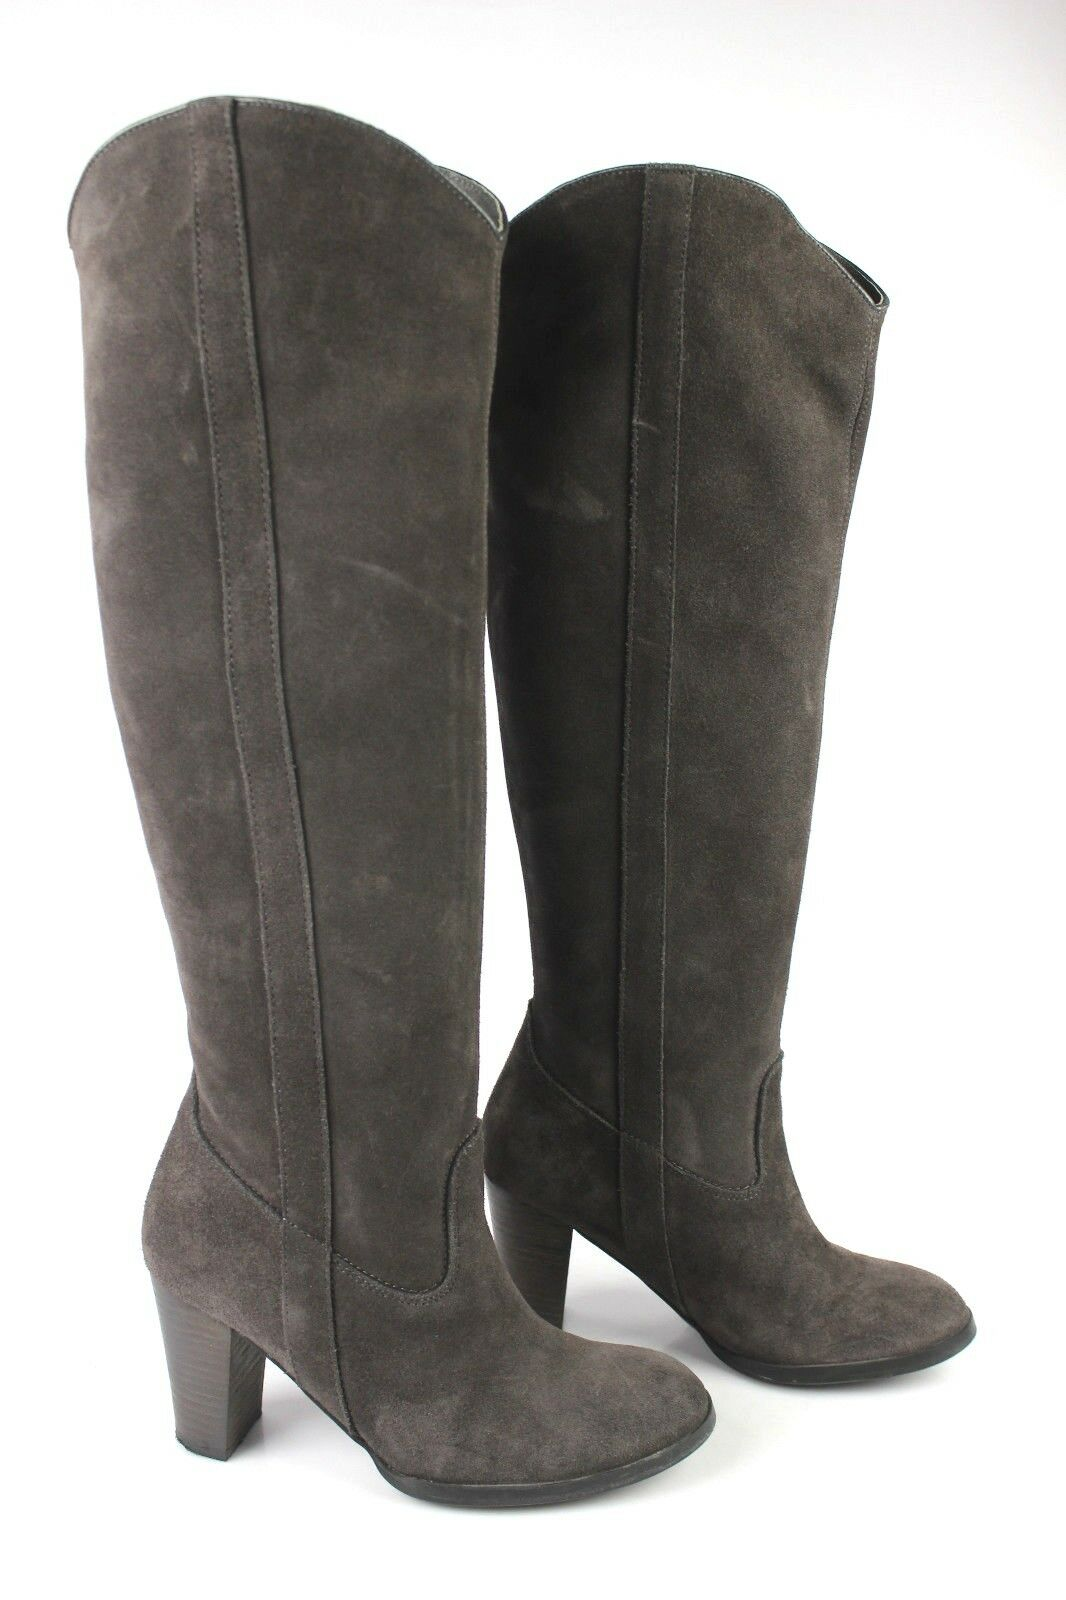 Boots High ANDRE Suede Grey taupe T 37 VERY GOOD CONDITION